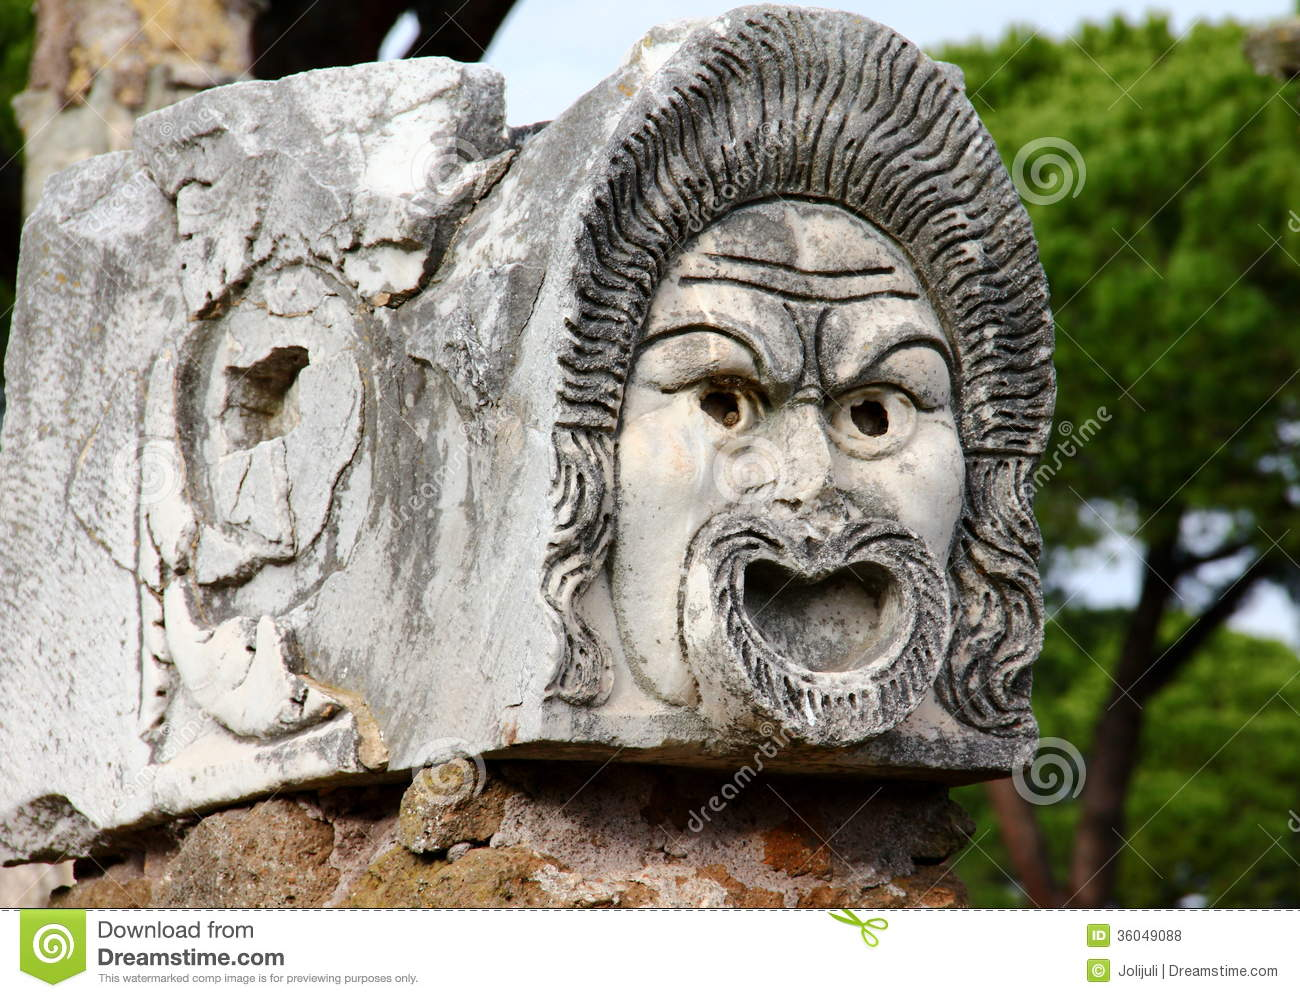 Ancient theatre mask royalty free stock photos image for Mr arredamenti ostia antica